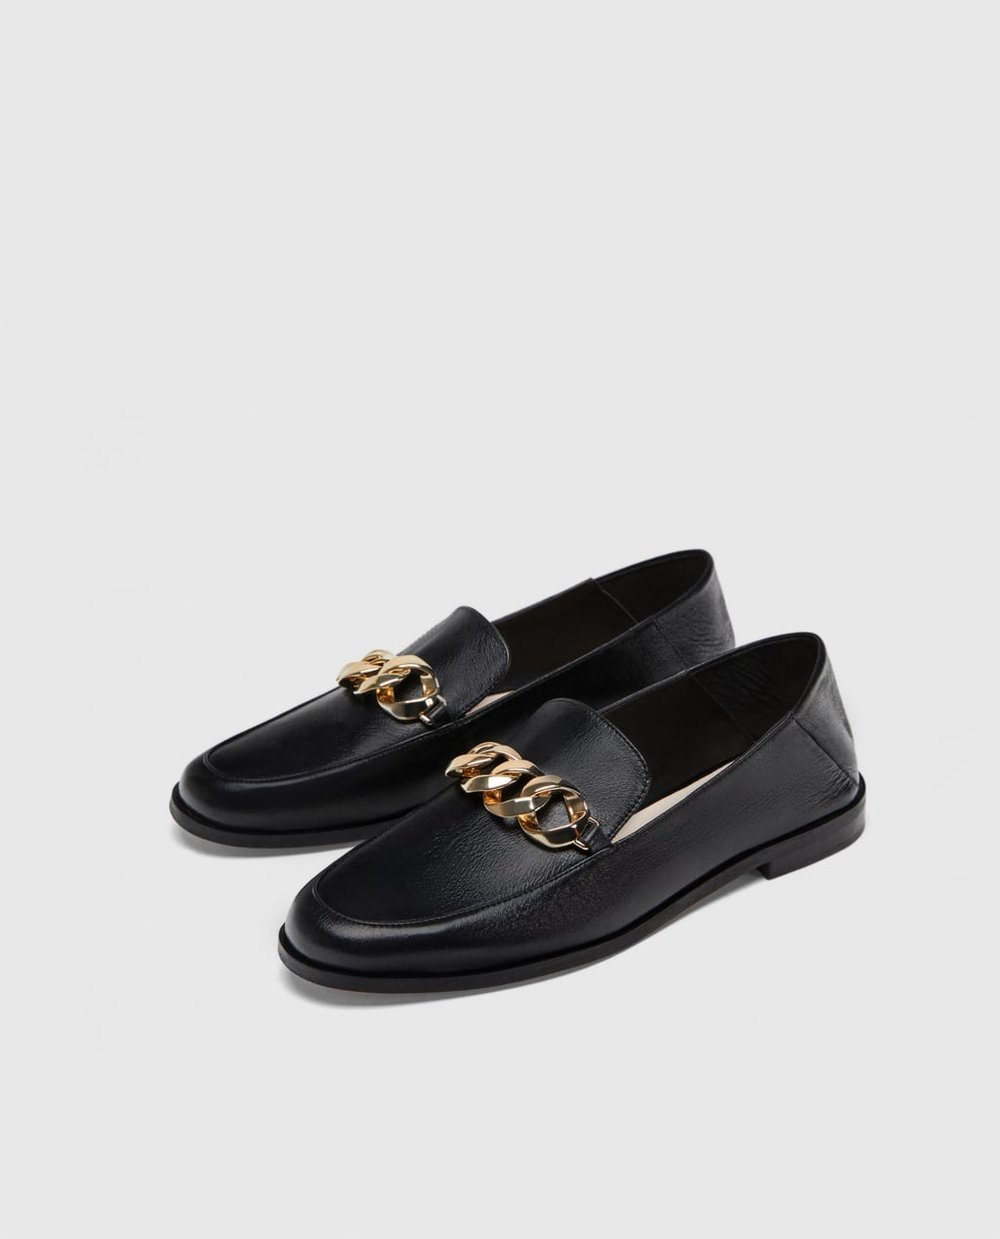 Zara Leather Loafer With Chain Detail